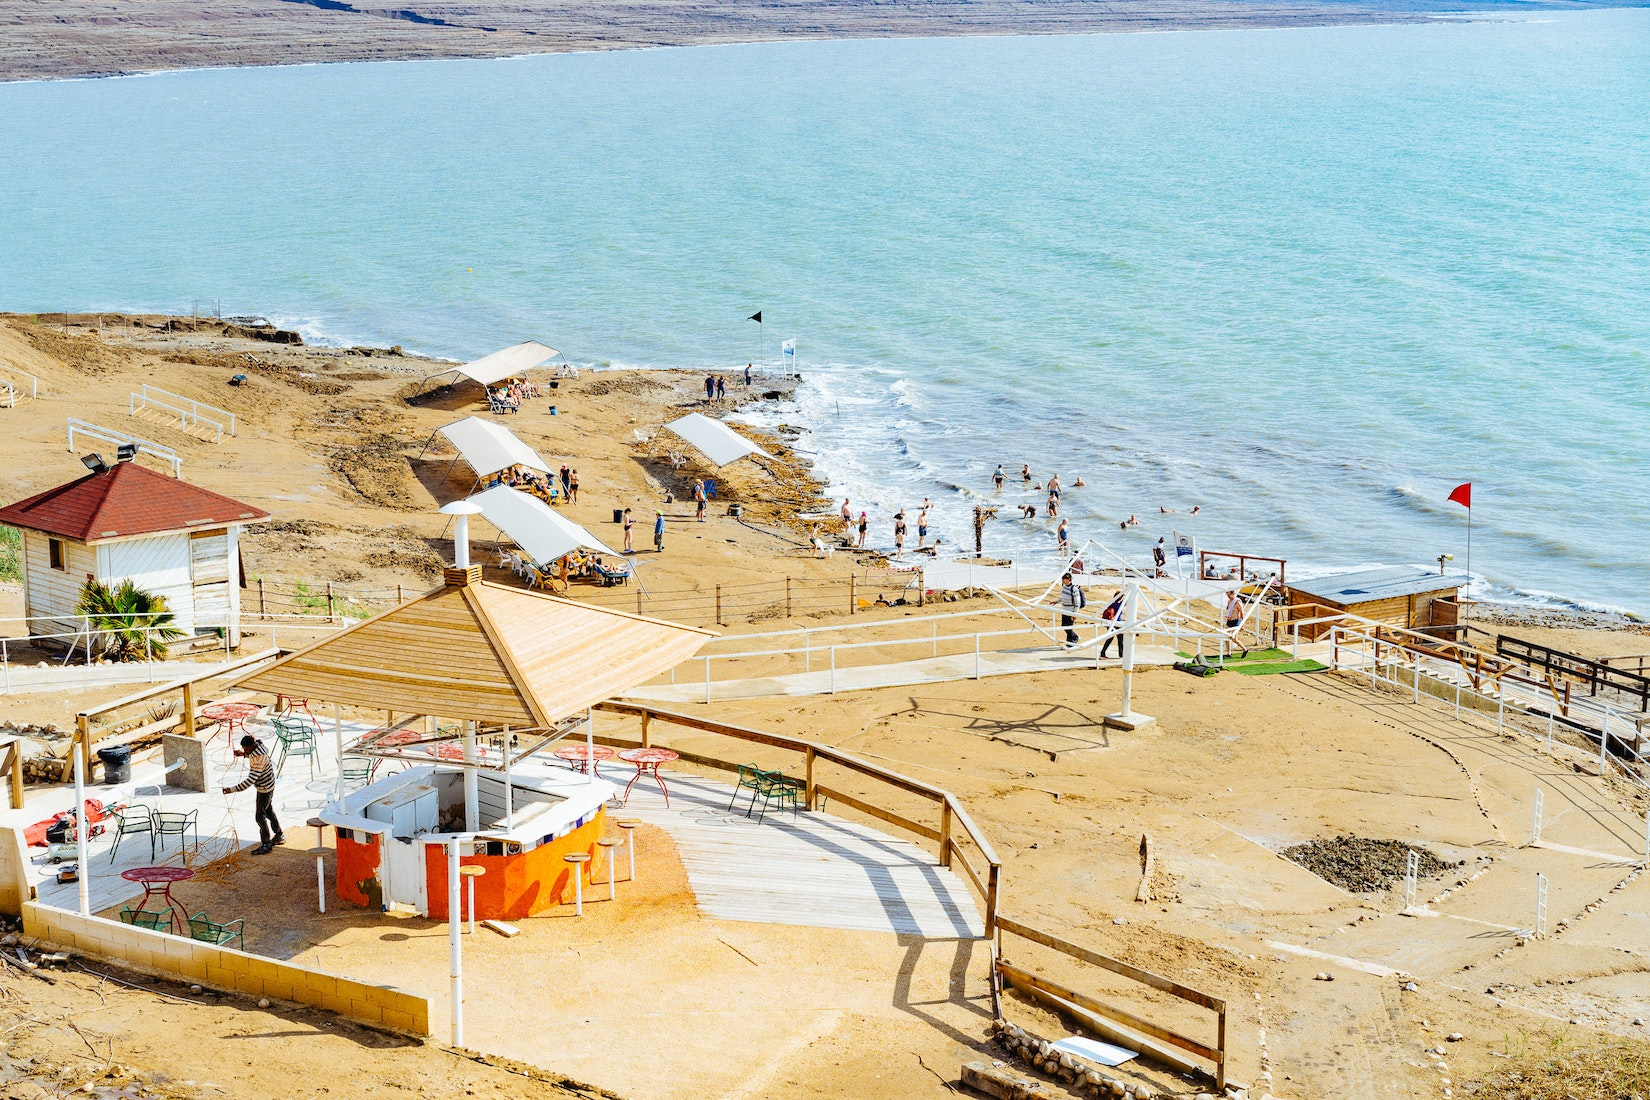 Resort at the Dead Sea in Israel